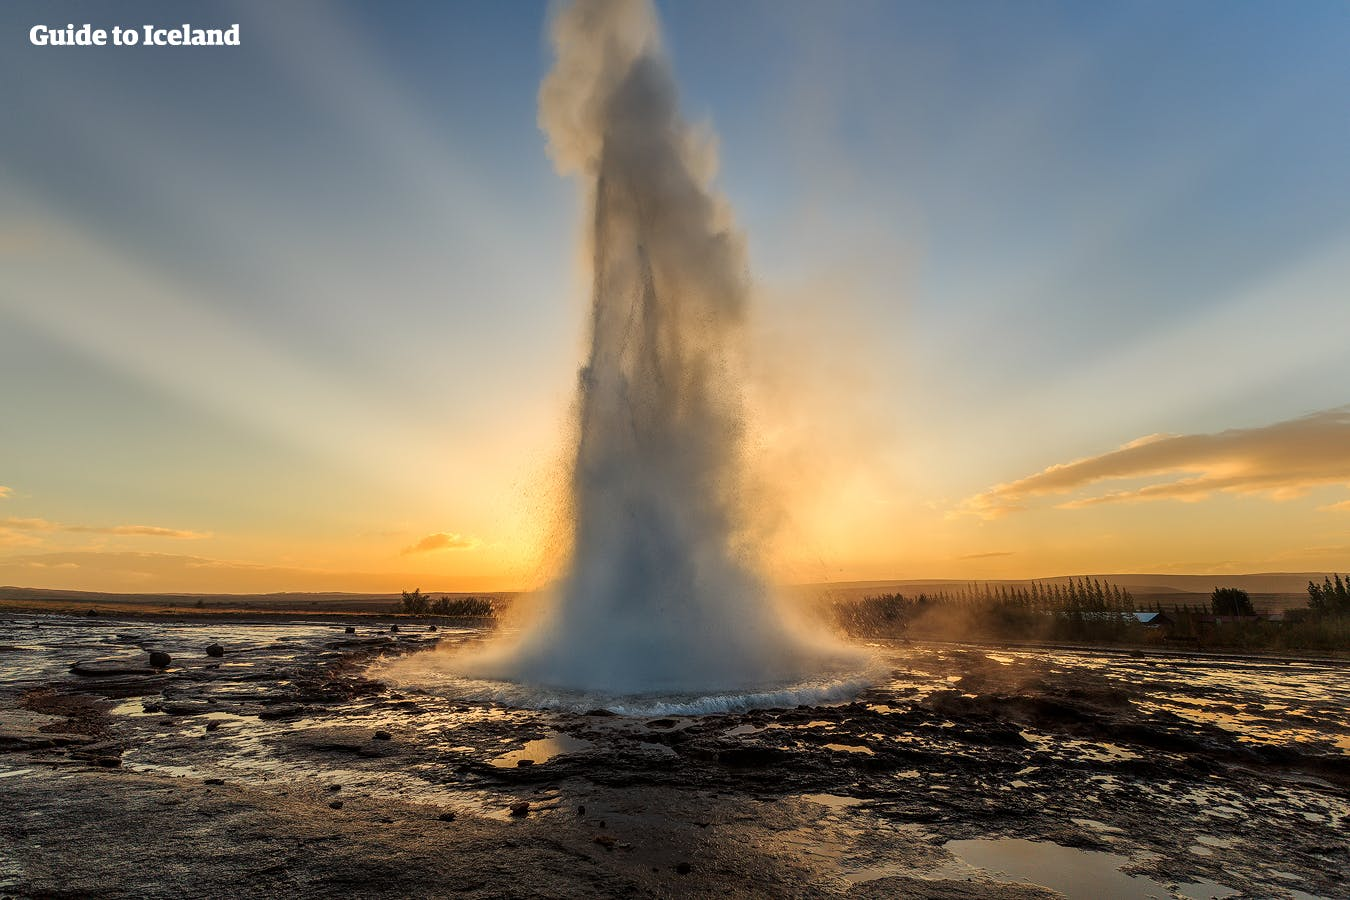 The impressive erupting hot spring geyser at Geysir geothermal park is one of three main attractions on the Golden Circle route.